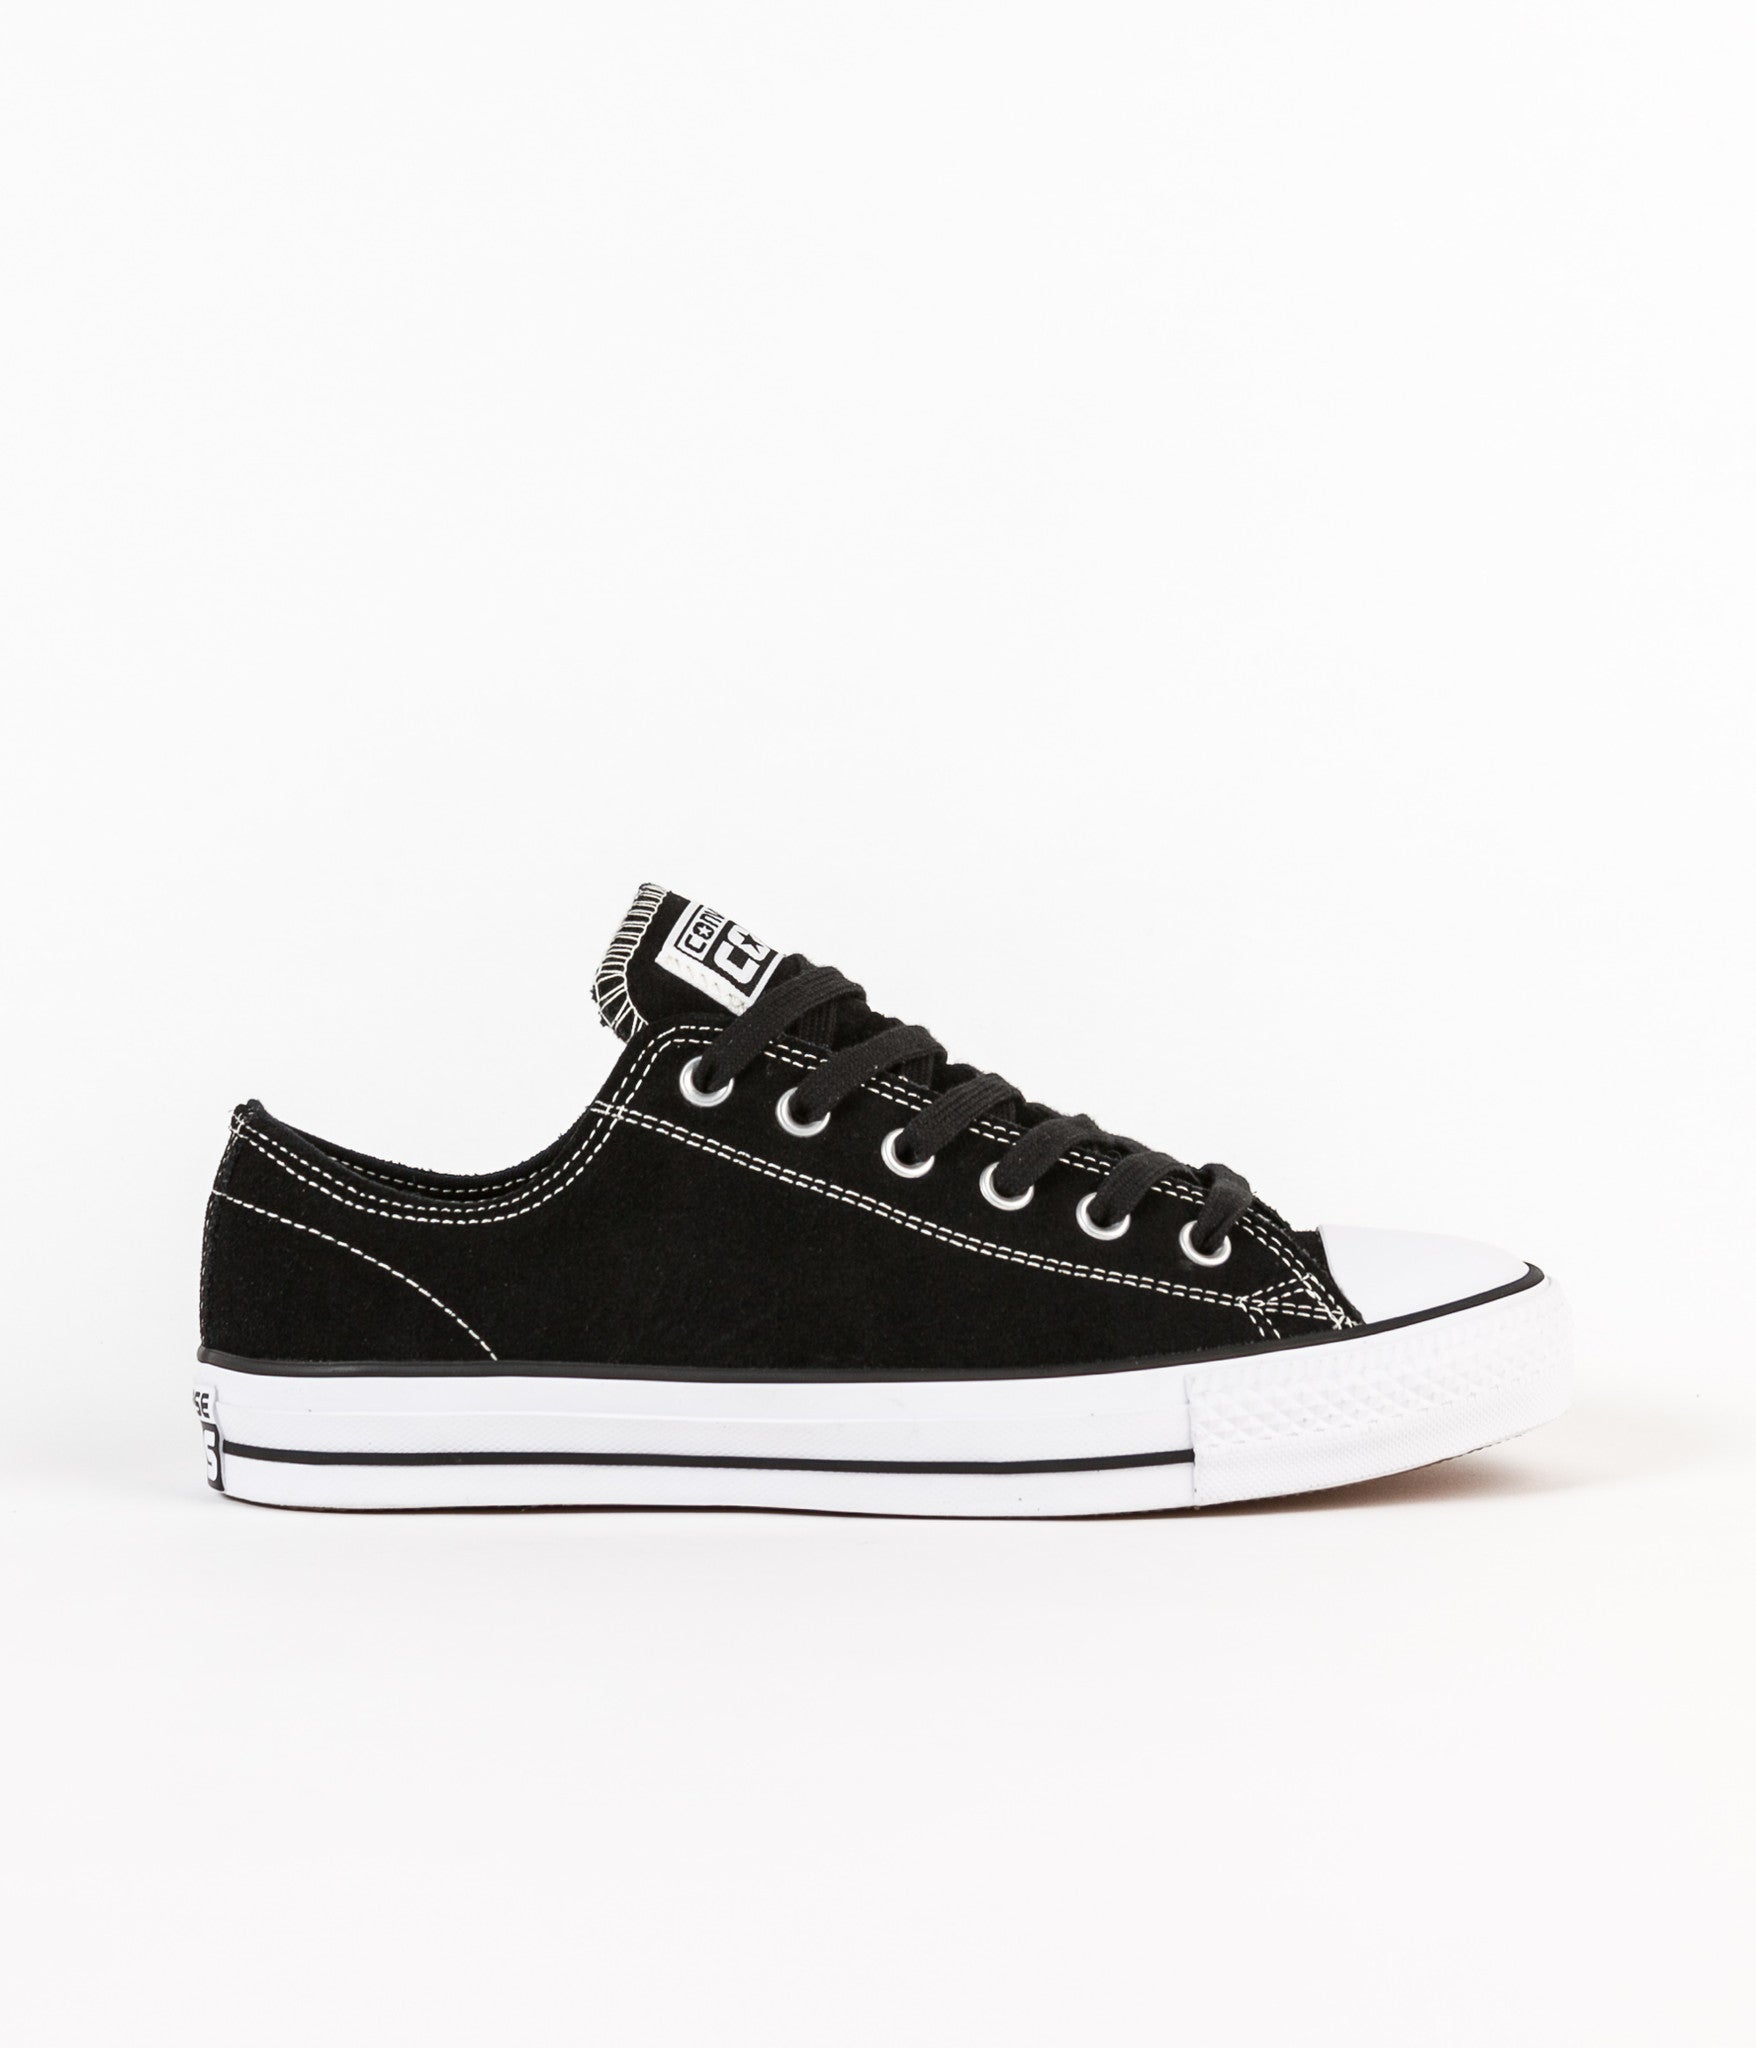 f1ecae036d4340 Converse CTAS Pro Ox Shoes - Black   White